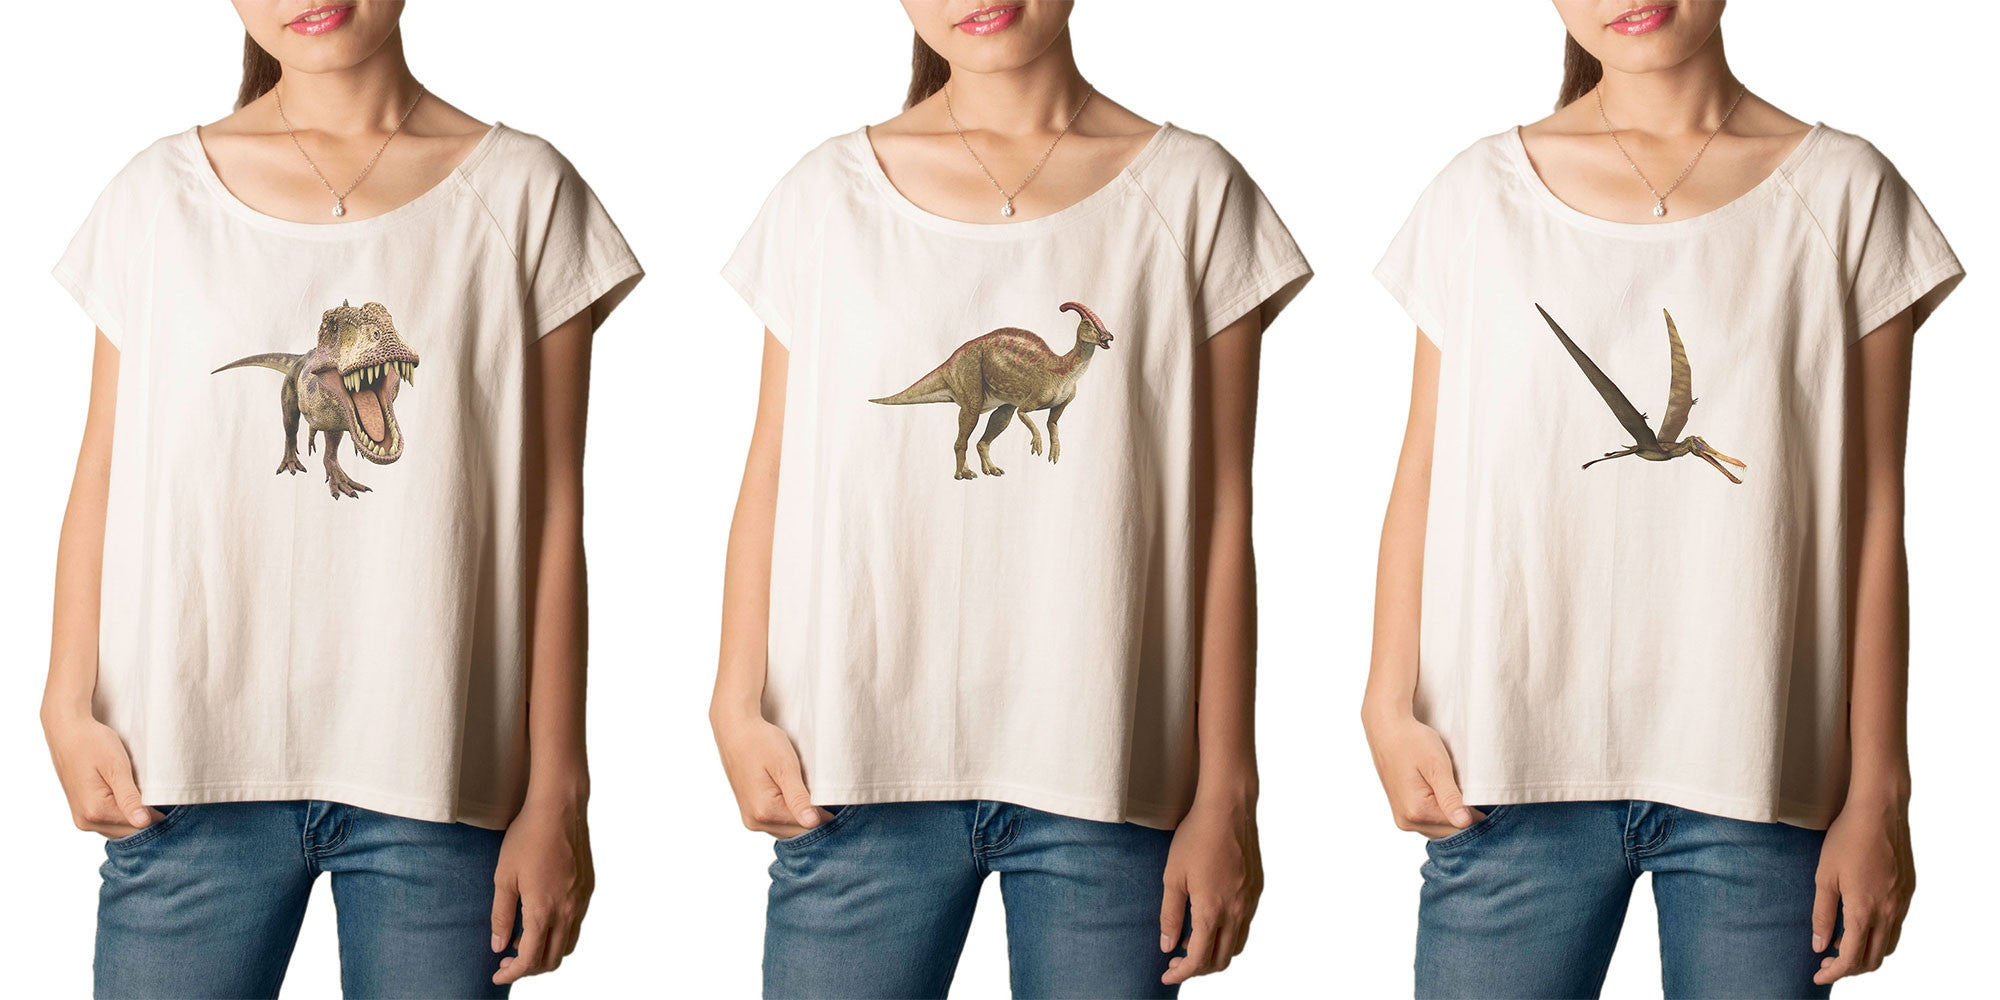 Women's Dinosaur 1 Printed cotton T-shirt  Tee WTS_01